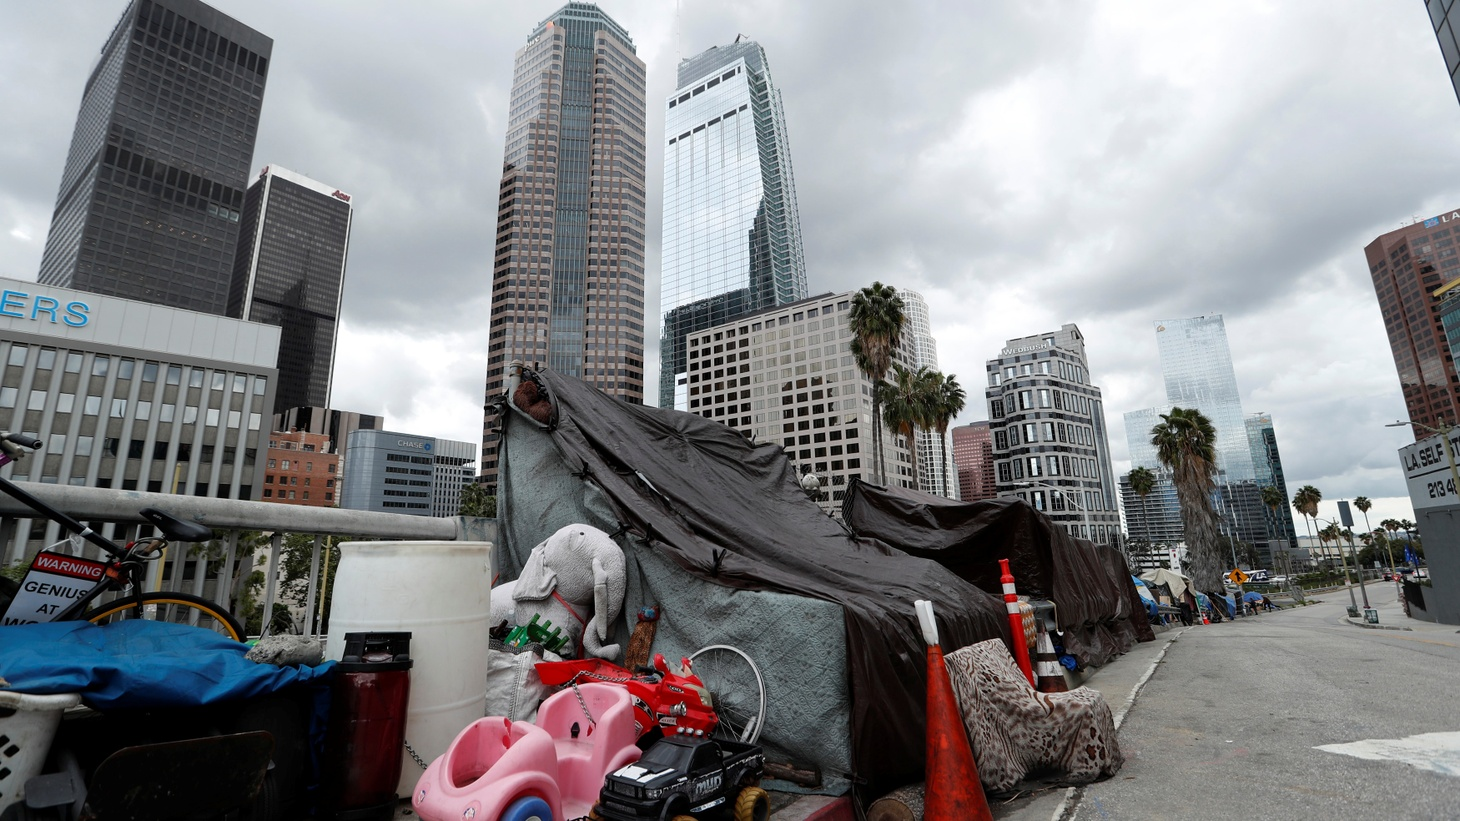 Homeless encampments are pictured in downtown LA during the coronavirus outbreak, March 20, 2020.